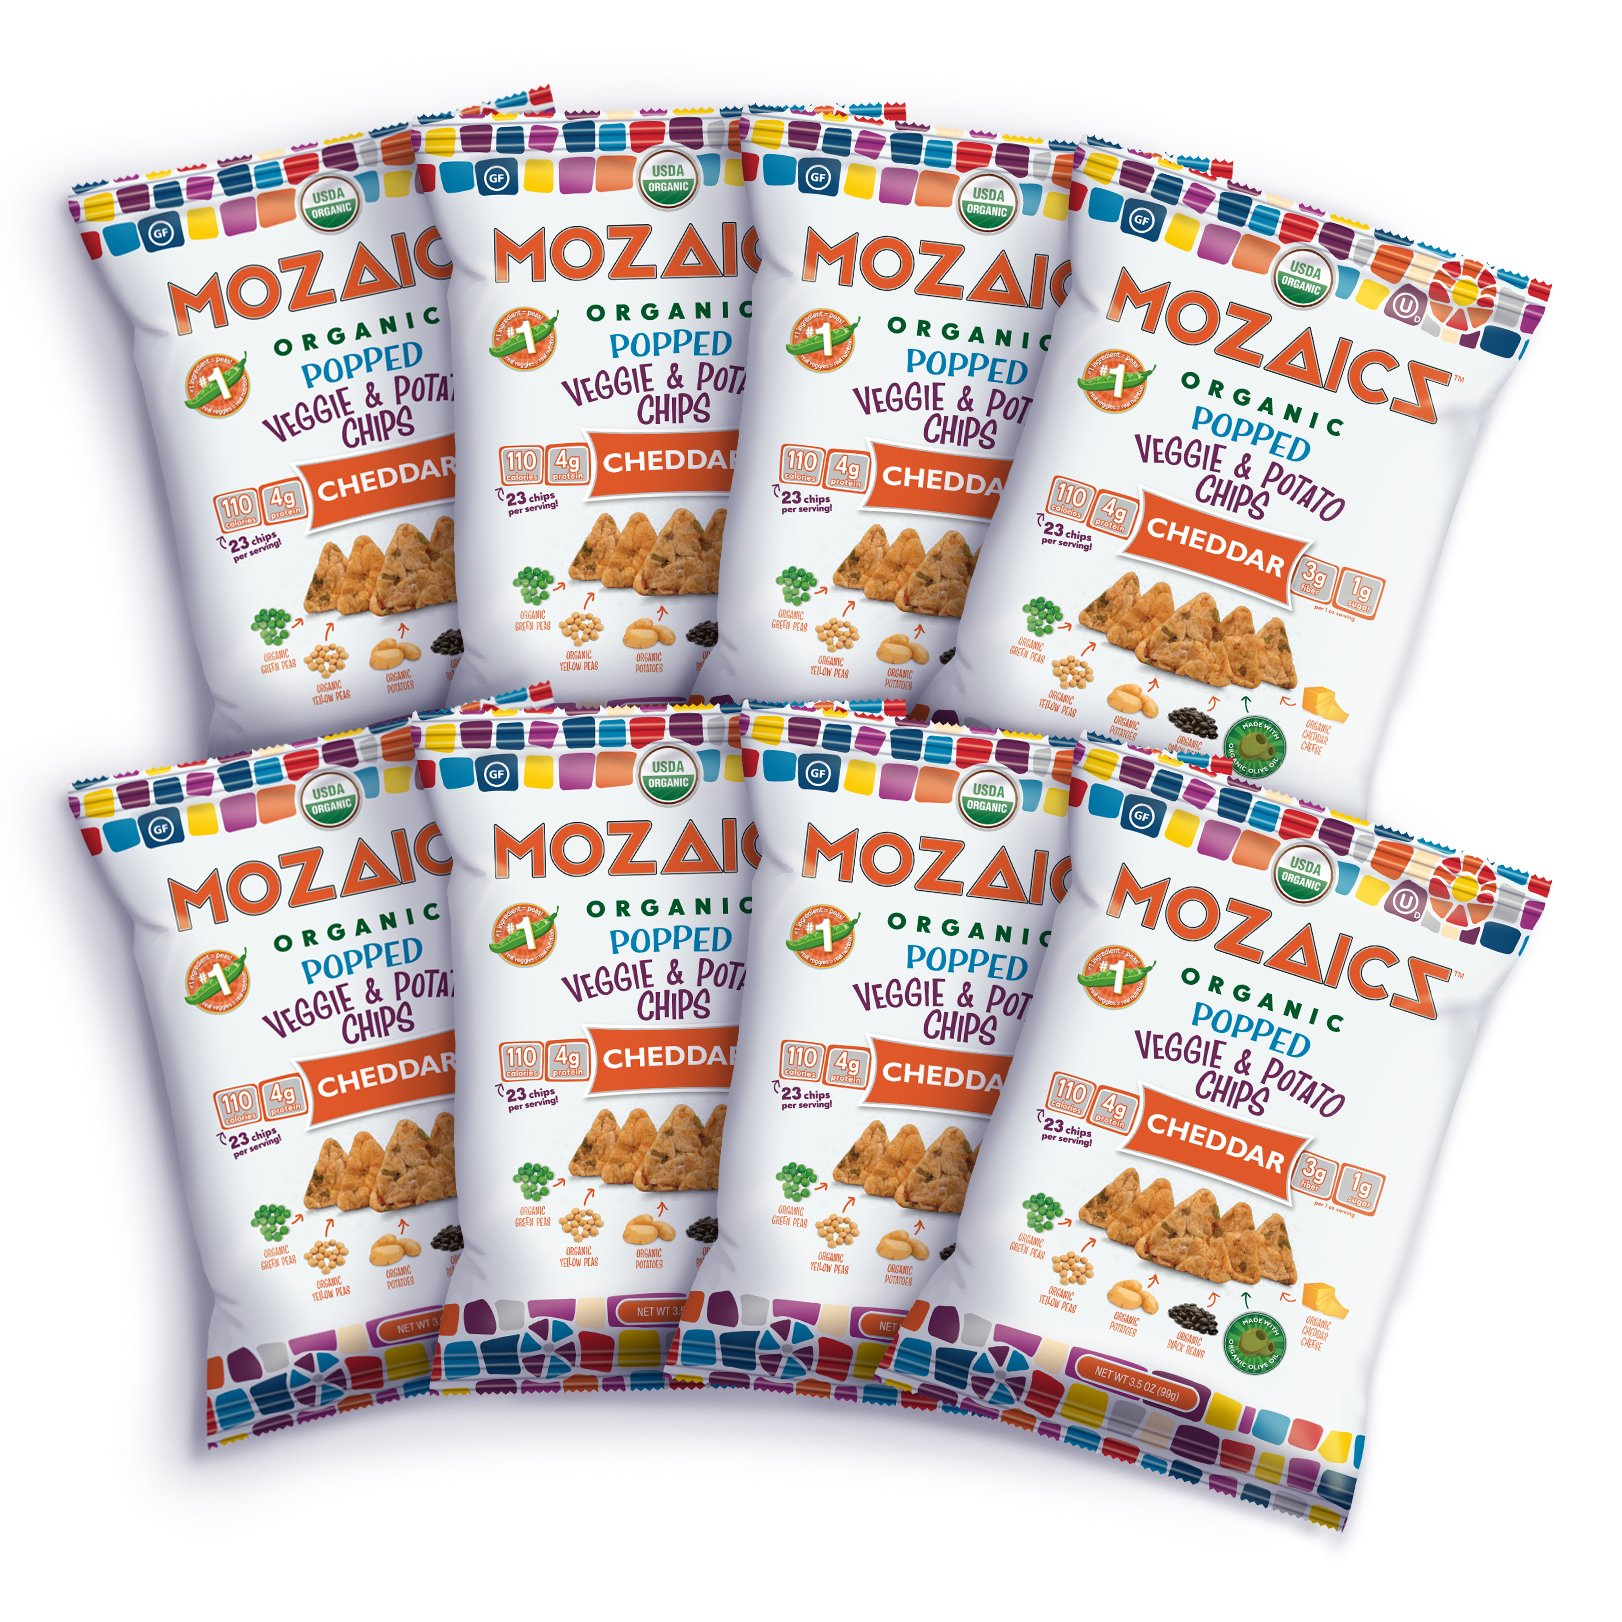 Mozaics Organic Popped Veggie & Potato Chips- Healthy snack, under 100 calories, better than veggie straws or stix - gluten free - 3.5oz big bags (Cheddar, 8-count) by Mozaics